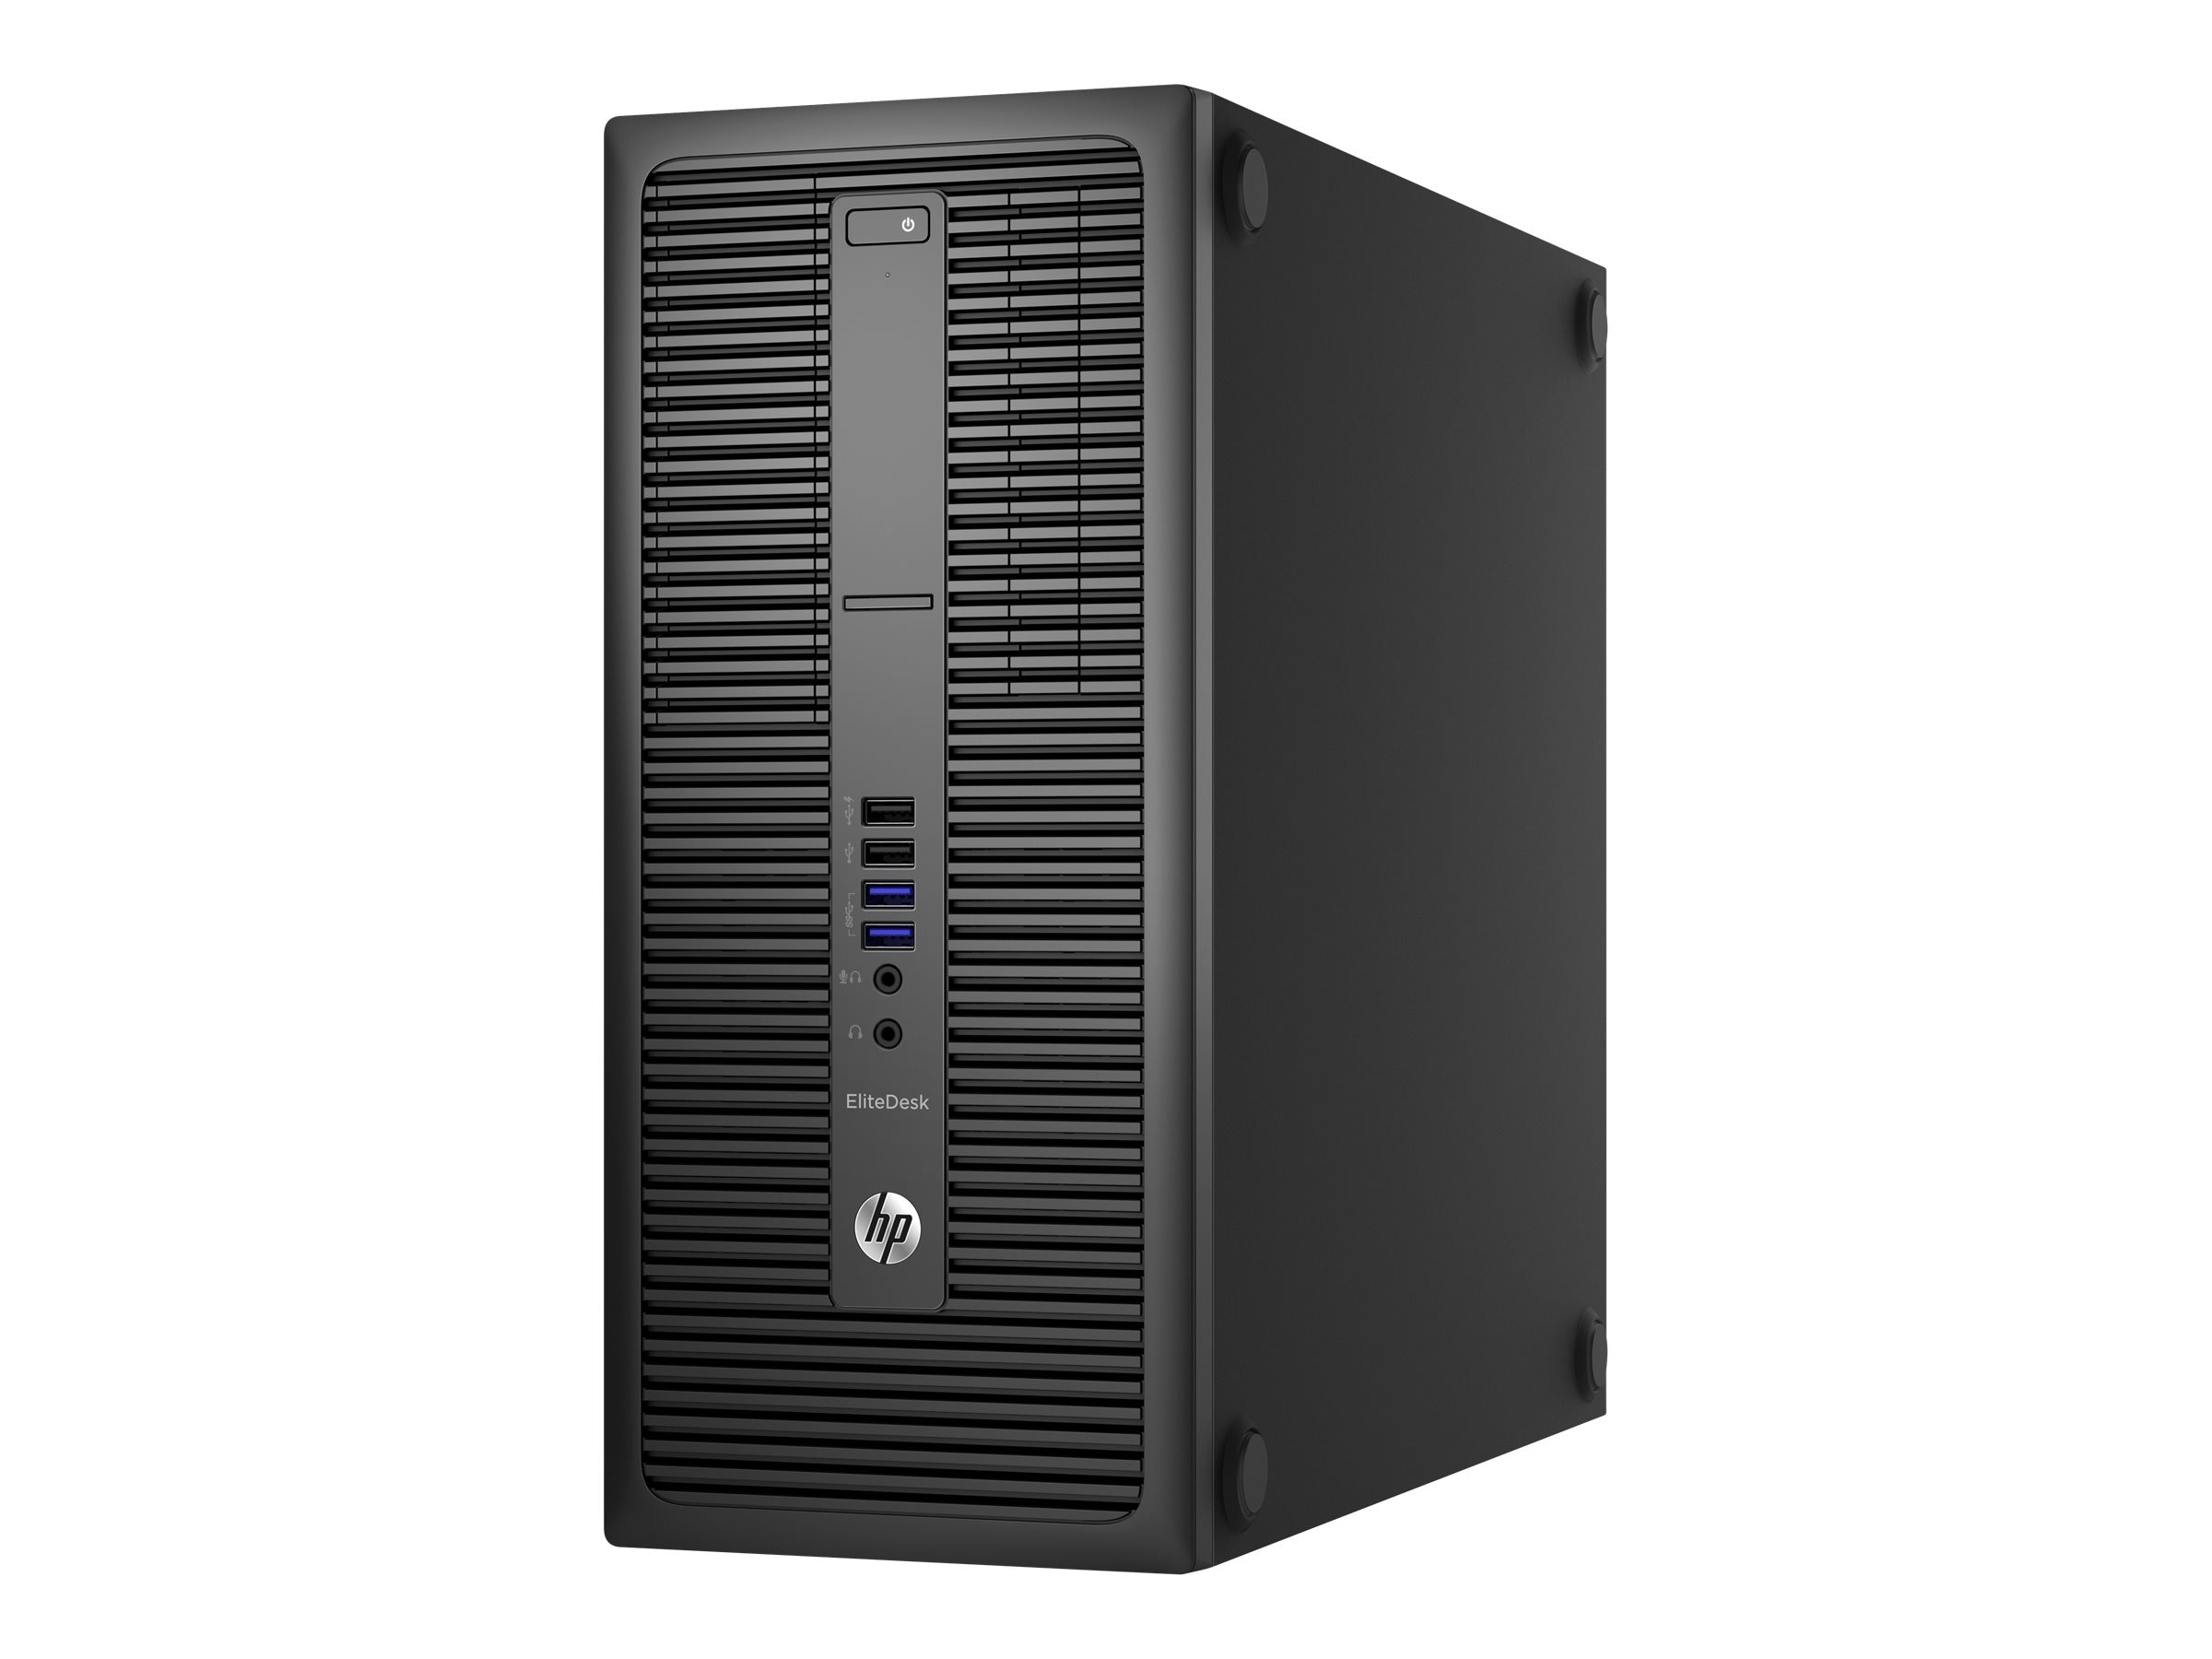 HP EliteDesk 800 G2 3.4GHz Core i7 8GB RAM 1TB hard drive, P4K19UT#ABA, 30729927, Desktops